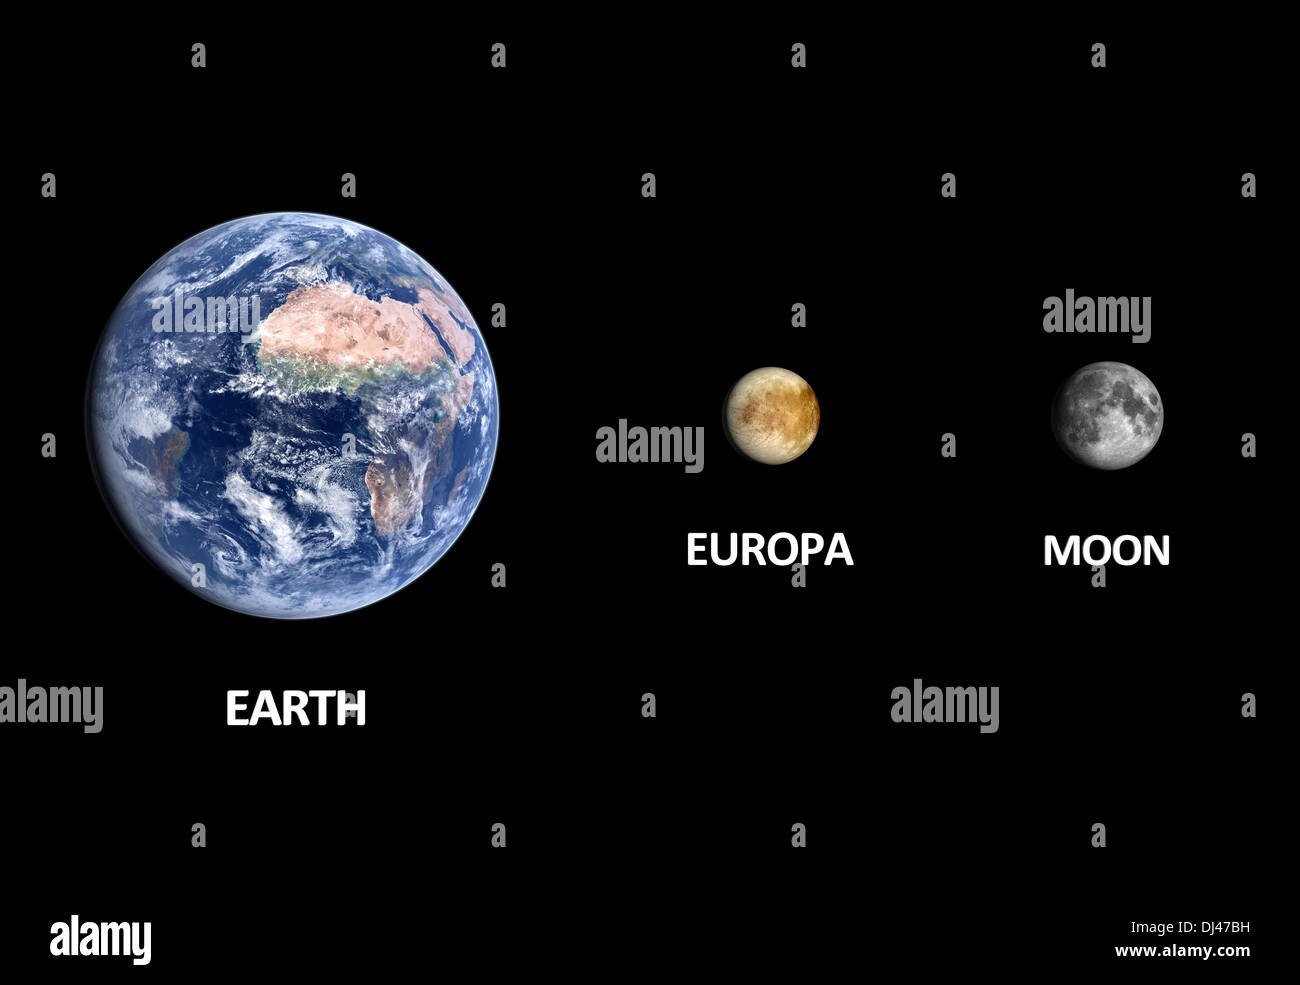 Earth And Moon Comparison Stock Photos & Earth And Moon Comparison ...